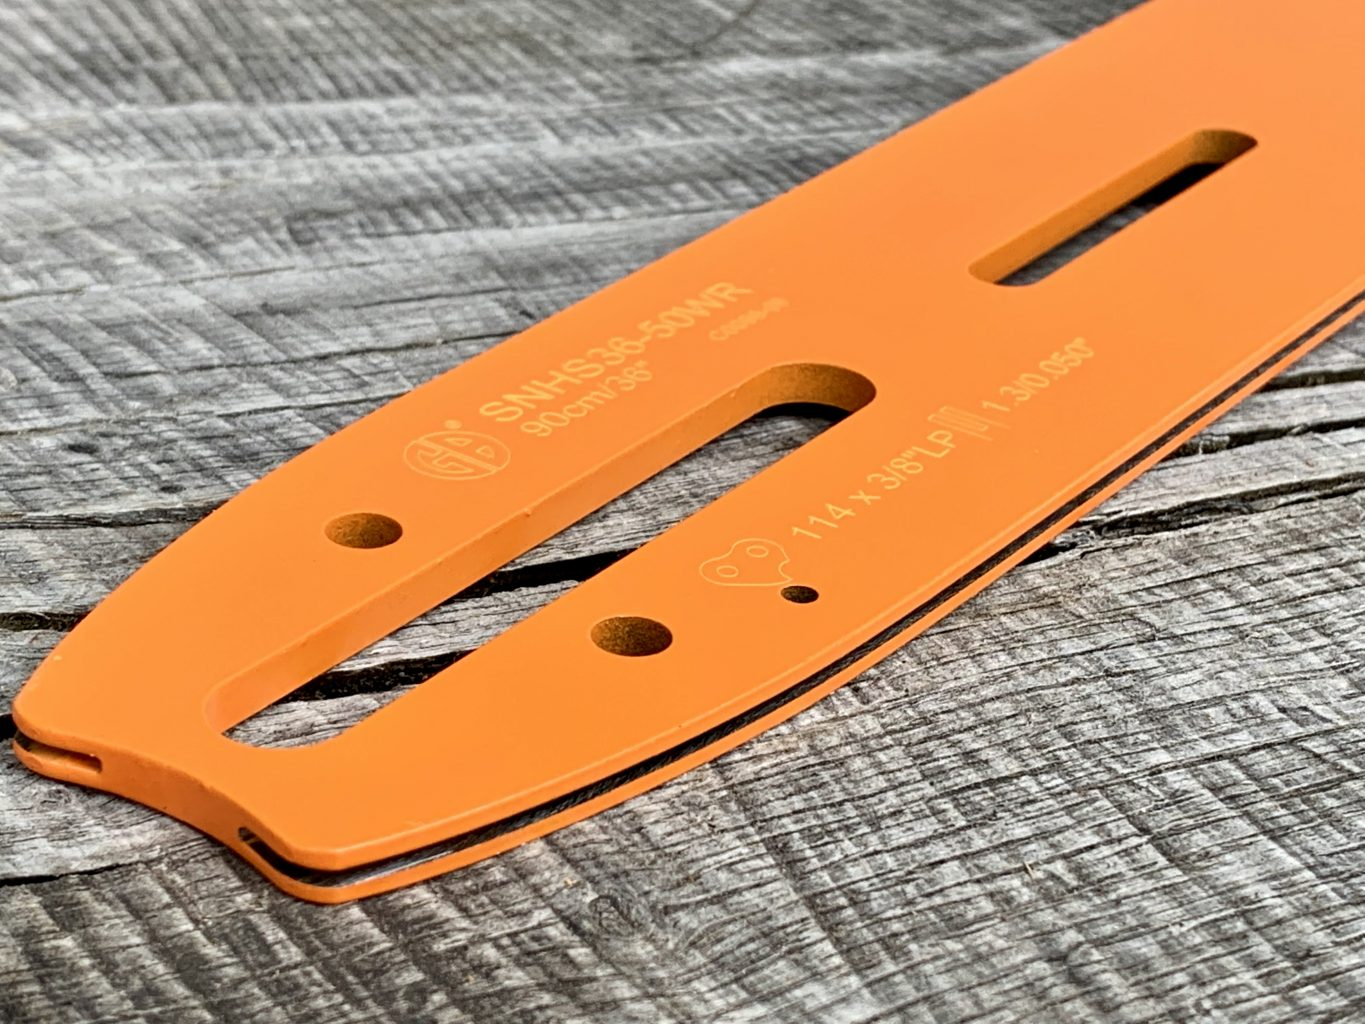 """HSS48-50WR 48""""[122cm] GB Slotted Lo Pro Milling Bar For Stihl 066, MS660, MS661 + GB1214 Adapter 3/8 Lo pro .050 153 drive links"""